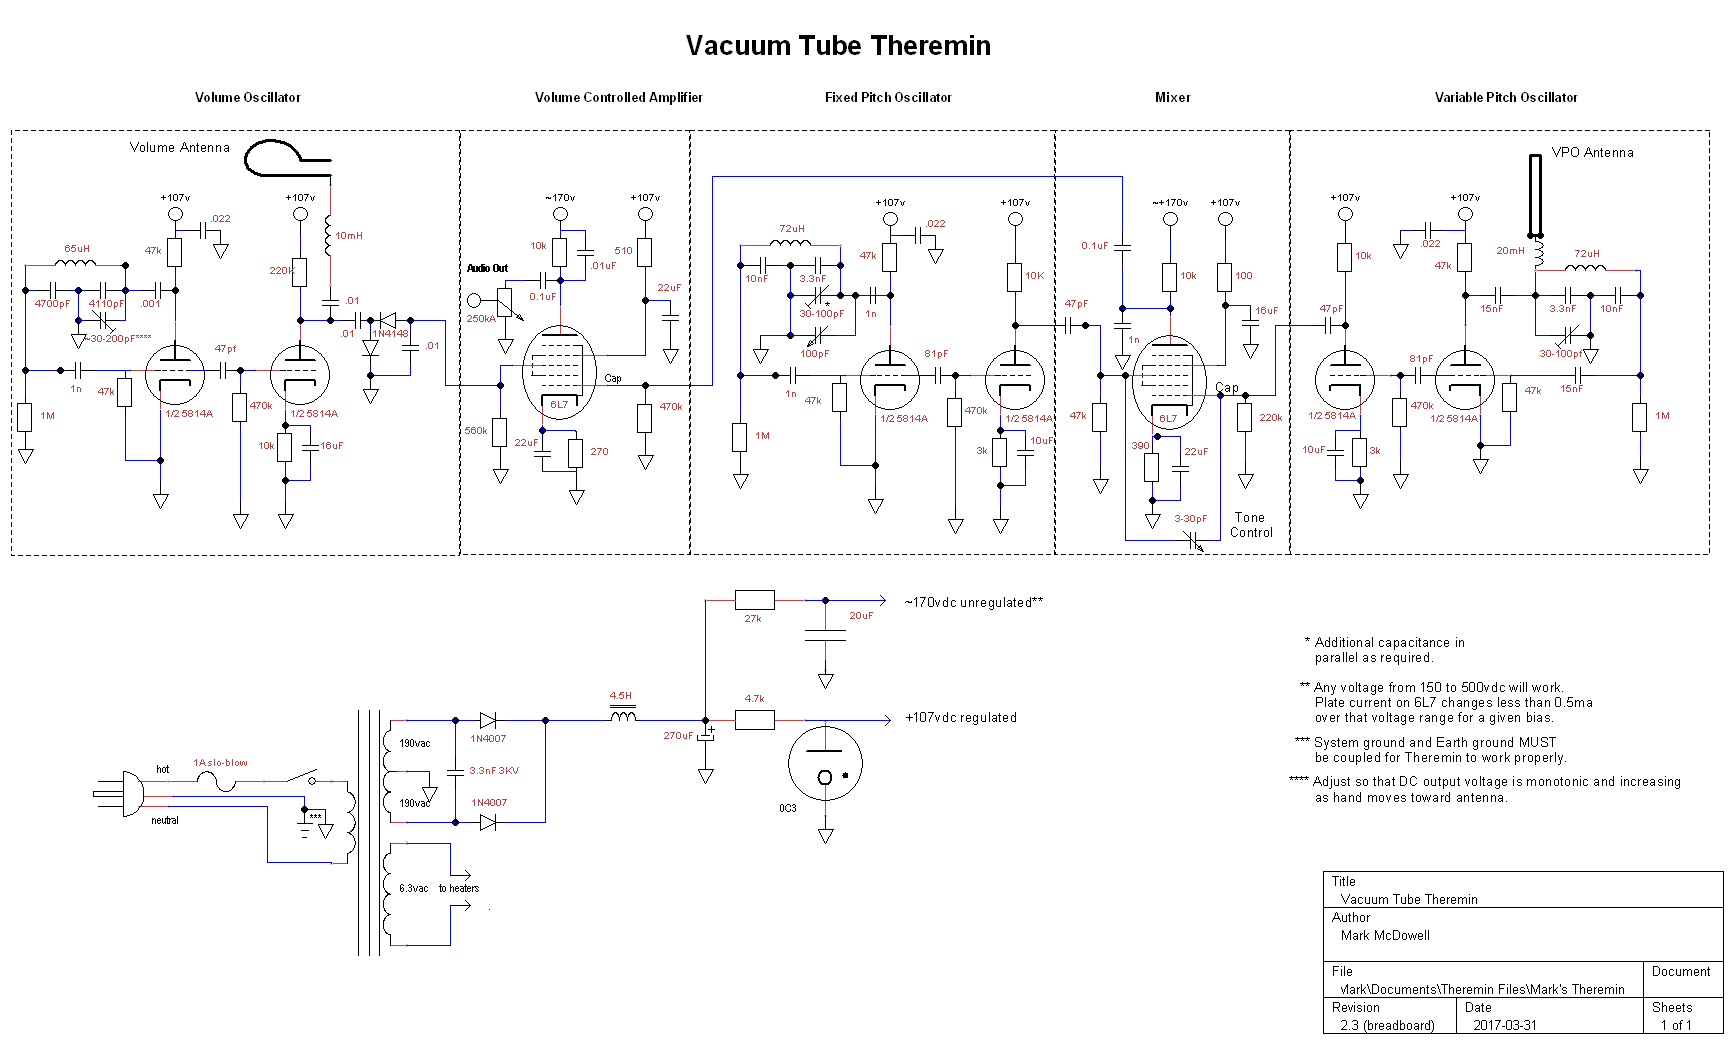 Vacuum Tube Theremin